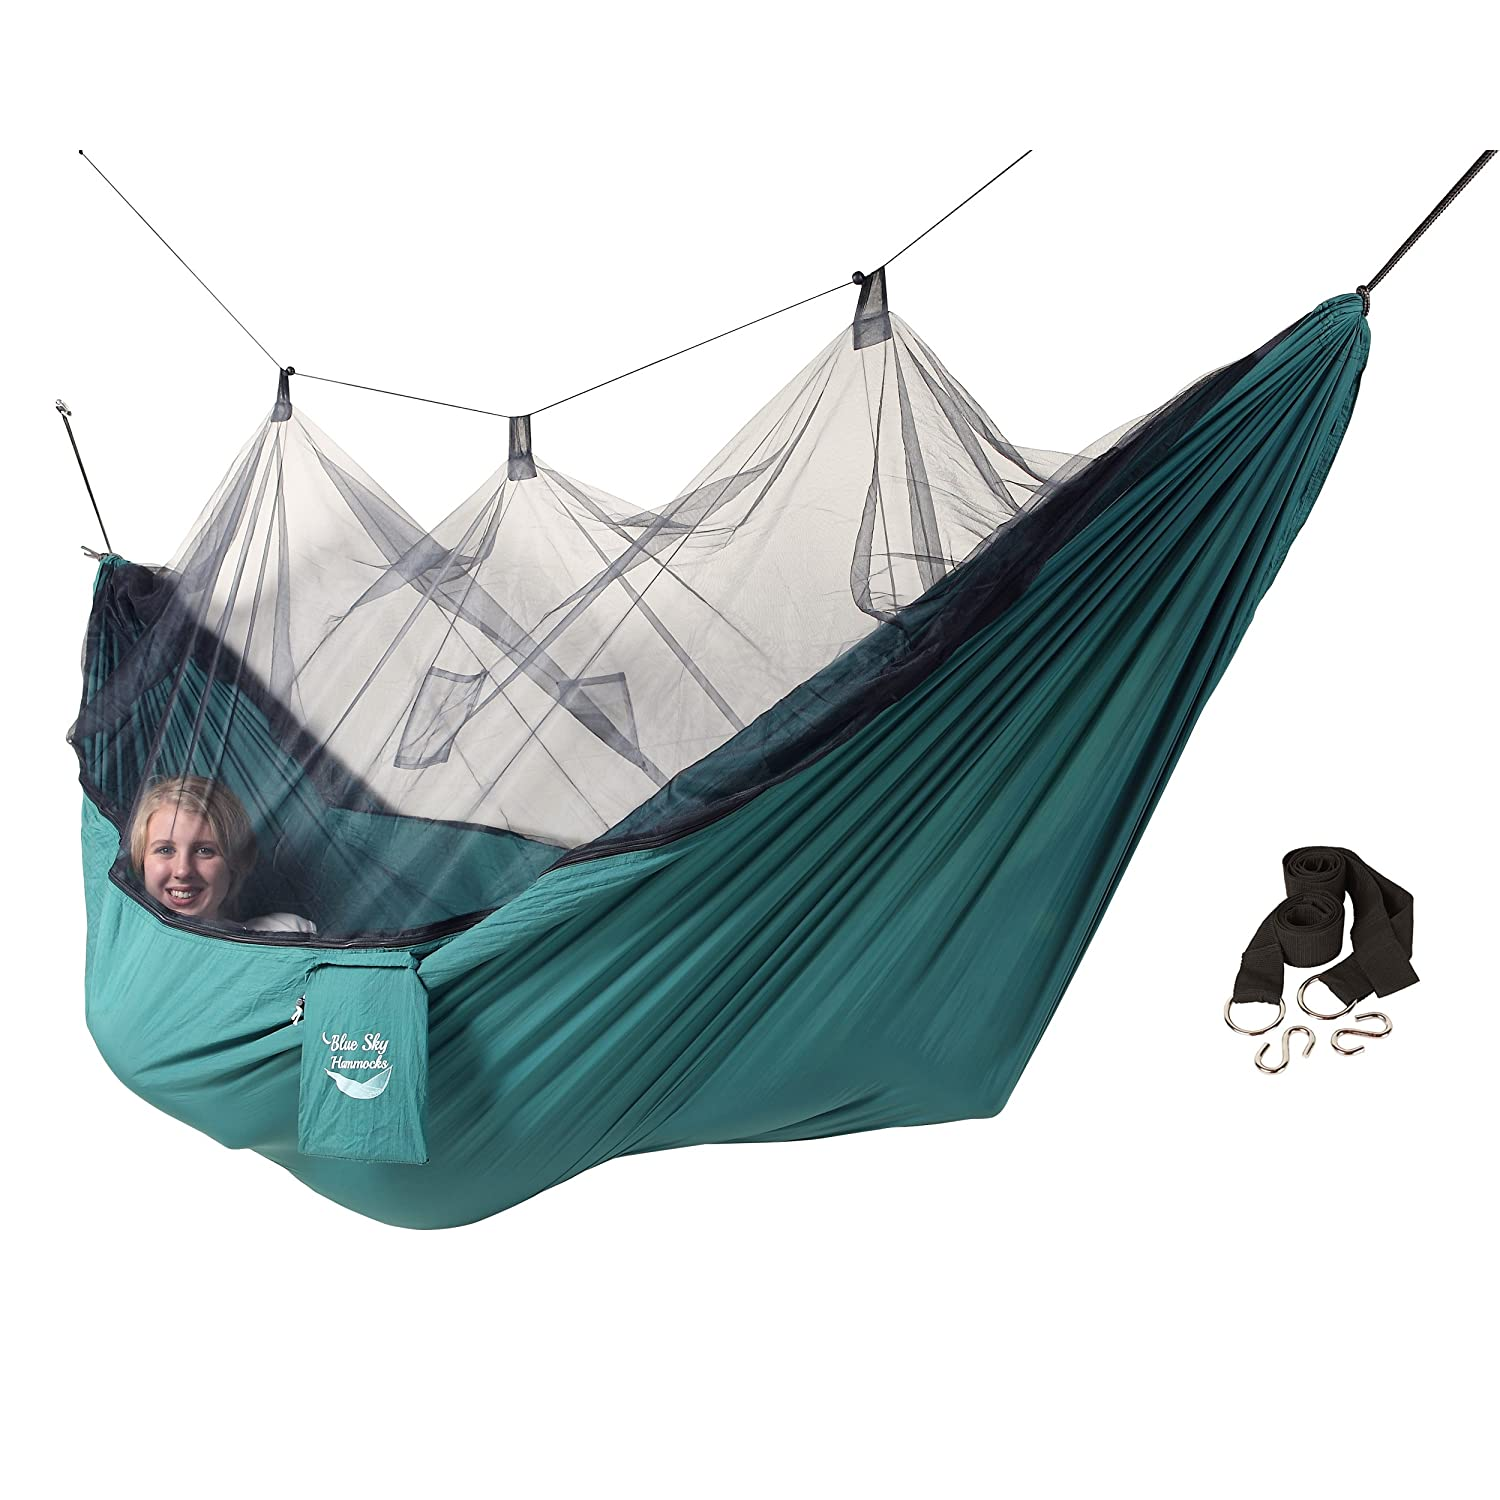 New mosquito net camping hammock portable outdoor travel for Net hammock bed